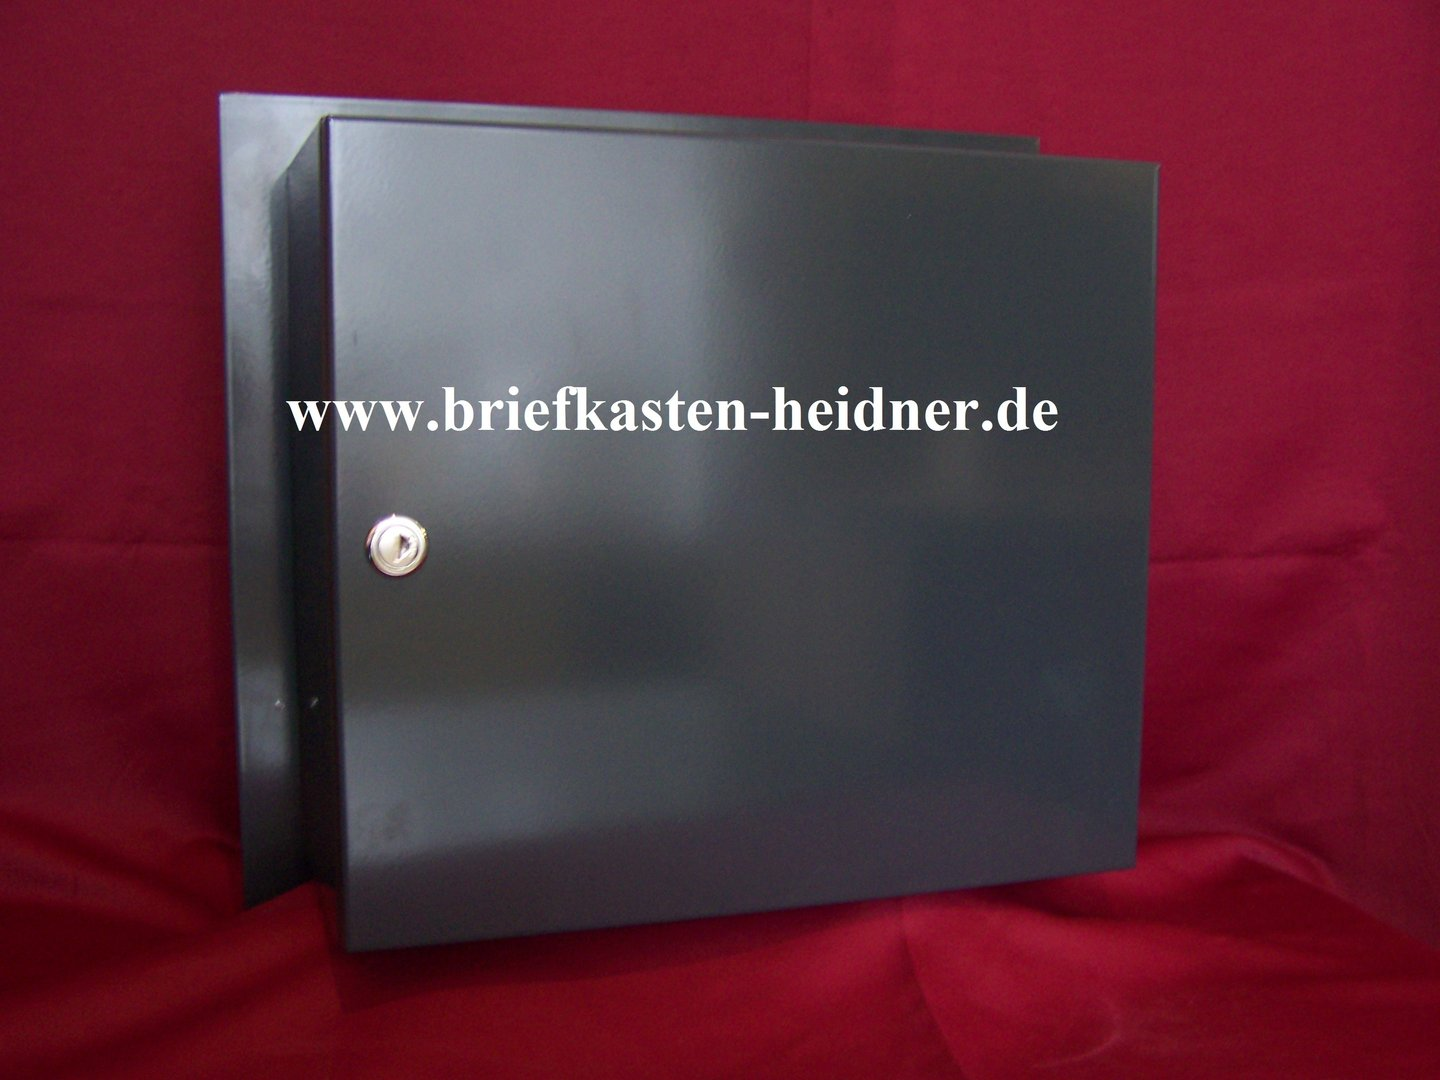 mdh116 knobloch mauerdurchwurf briefkasten 1 teilig fixtiefe 270 anthrazit oder farbauswahl. Black Bedroom Furniture Sets. Home Design Ideas